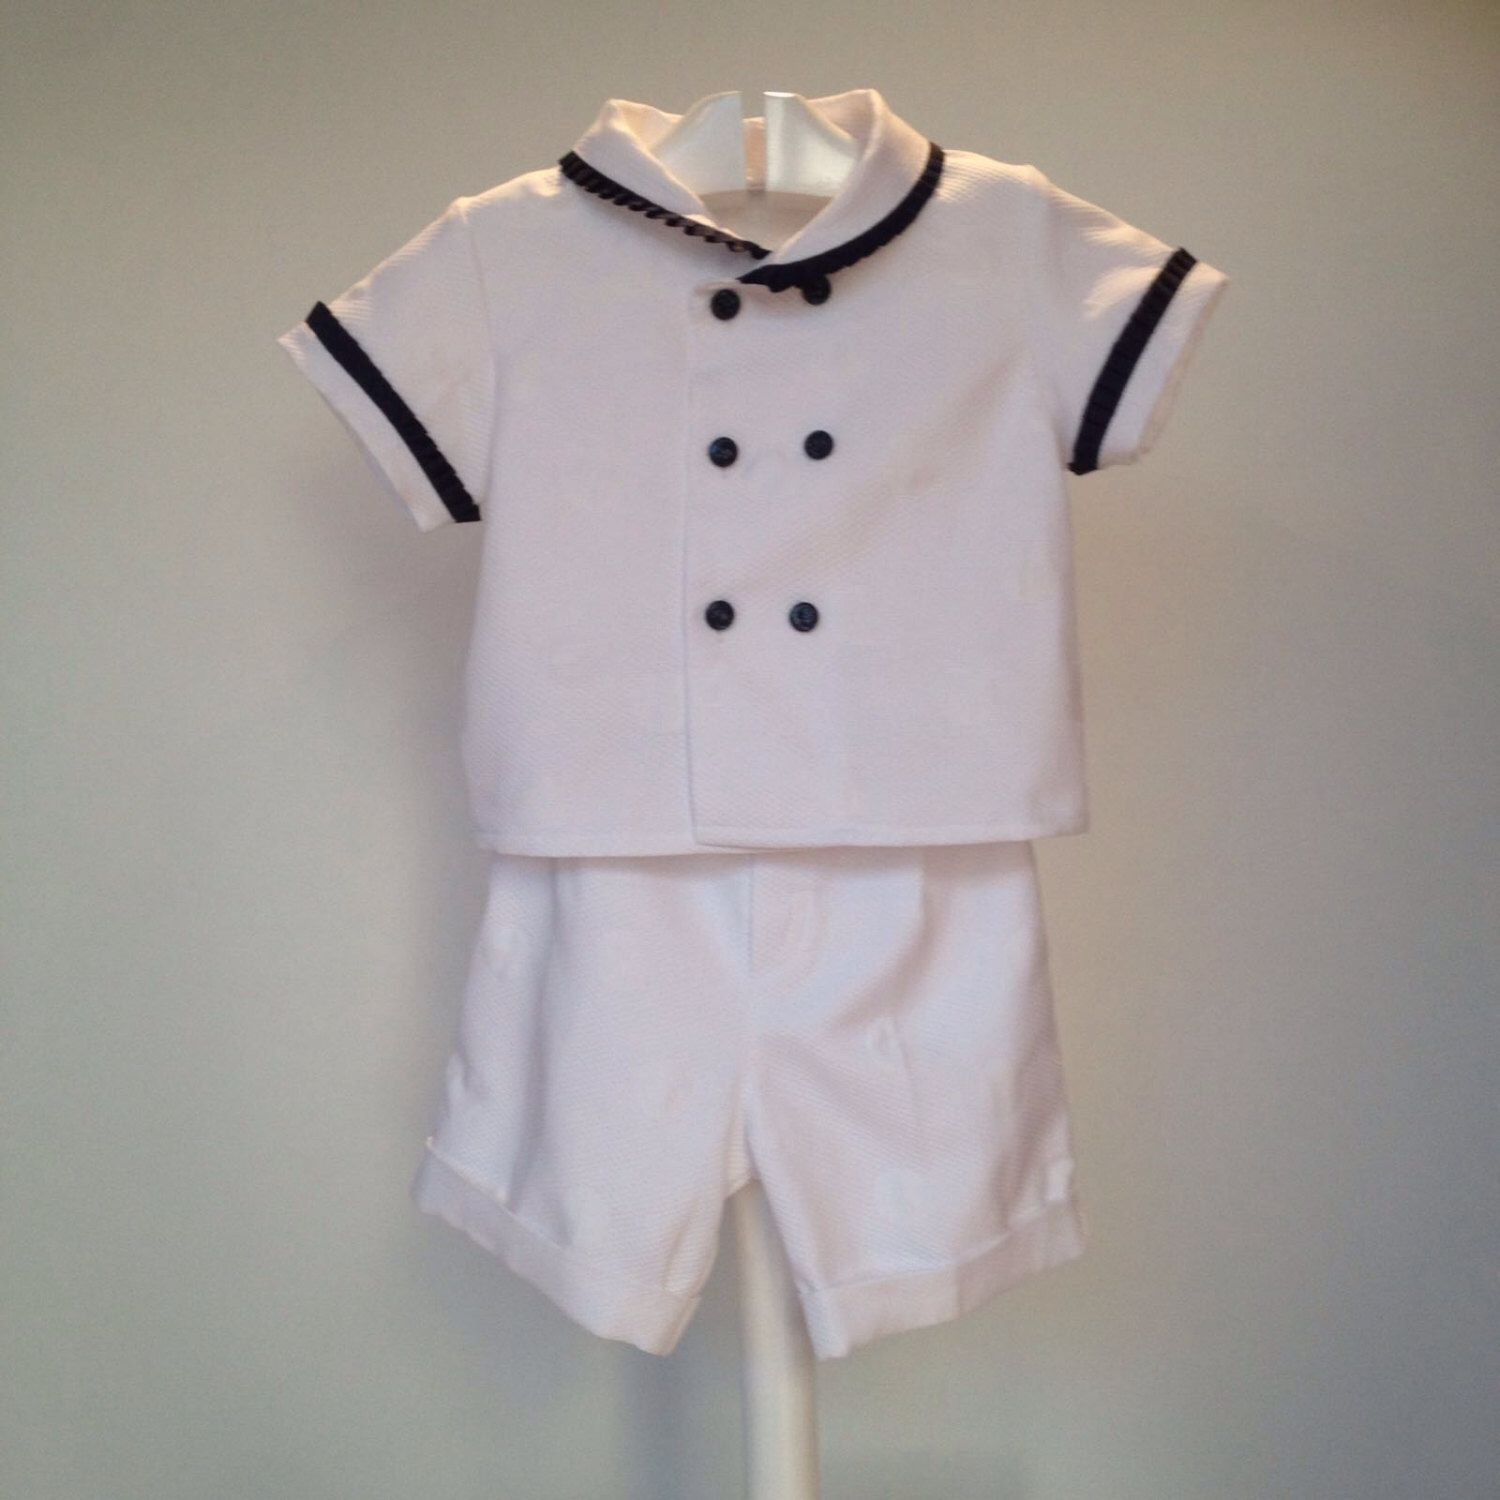 White blue sailor baby outfit boy nautical outfit toddler summer